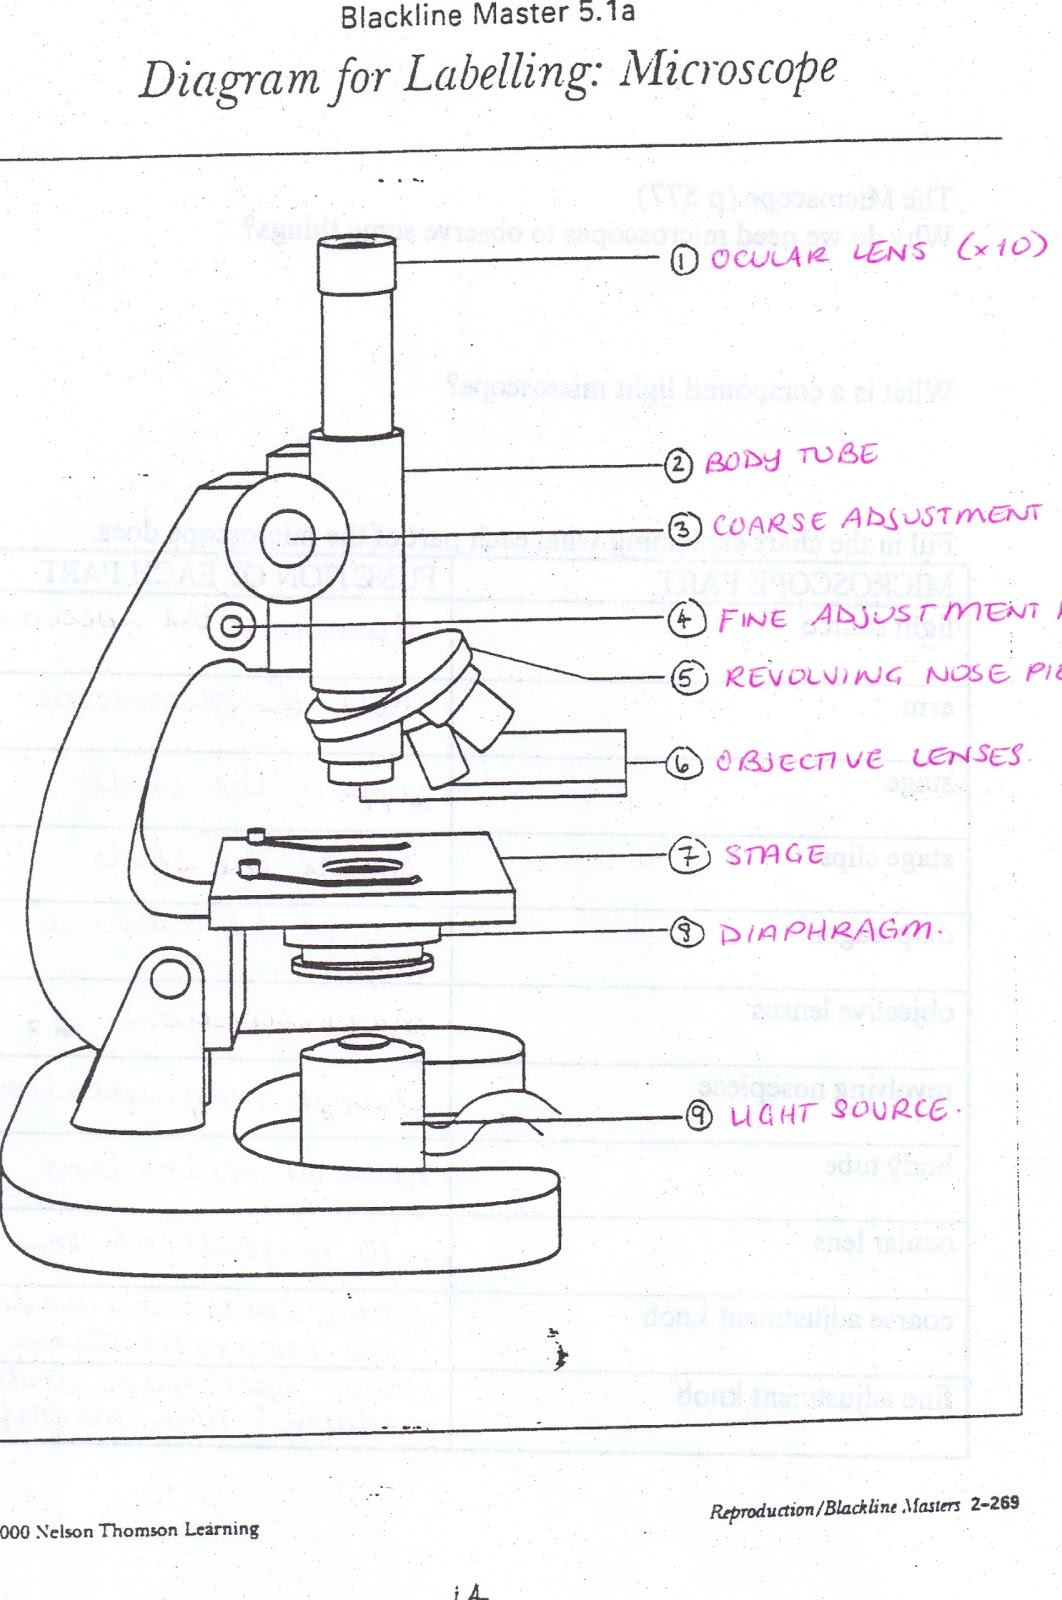 Compound Microscope Parts And Functions Worksheet  ABITLIKETHIS education, grade worksheets, learning, worksheets for teachers, and math worksheets Compound Microscope Parts And Functions Worksheet 1600 x 1062